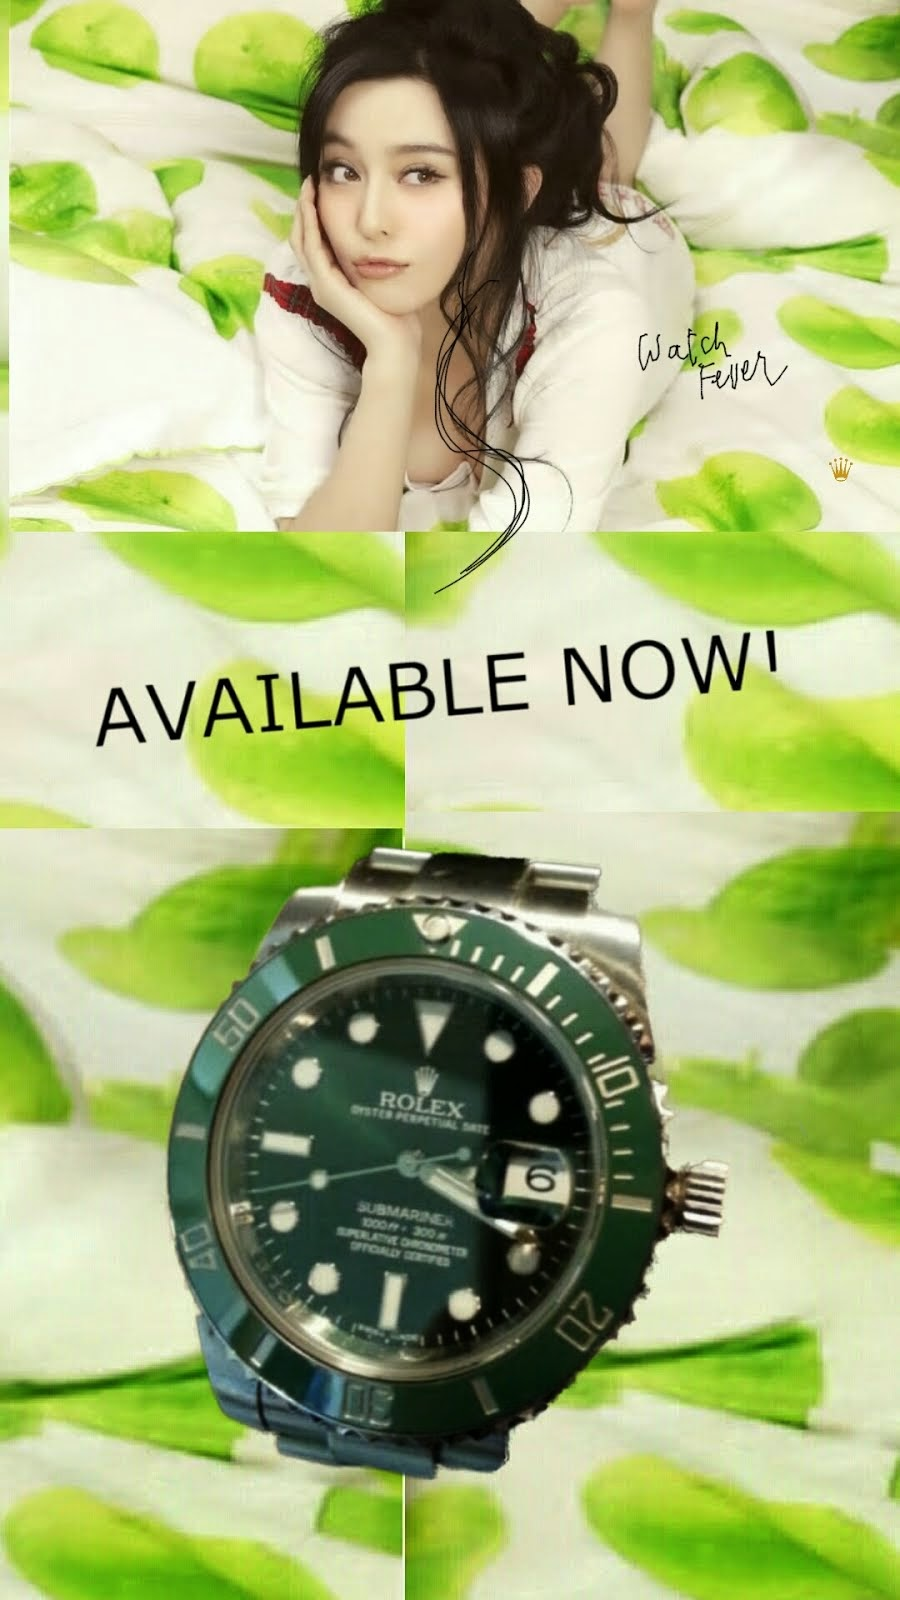 Submariner Green bezel Green Dial is Available NOW at AD